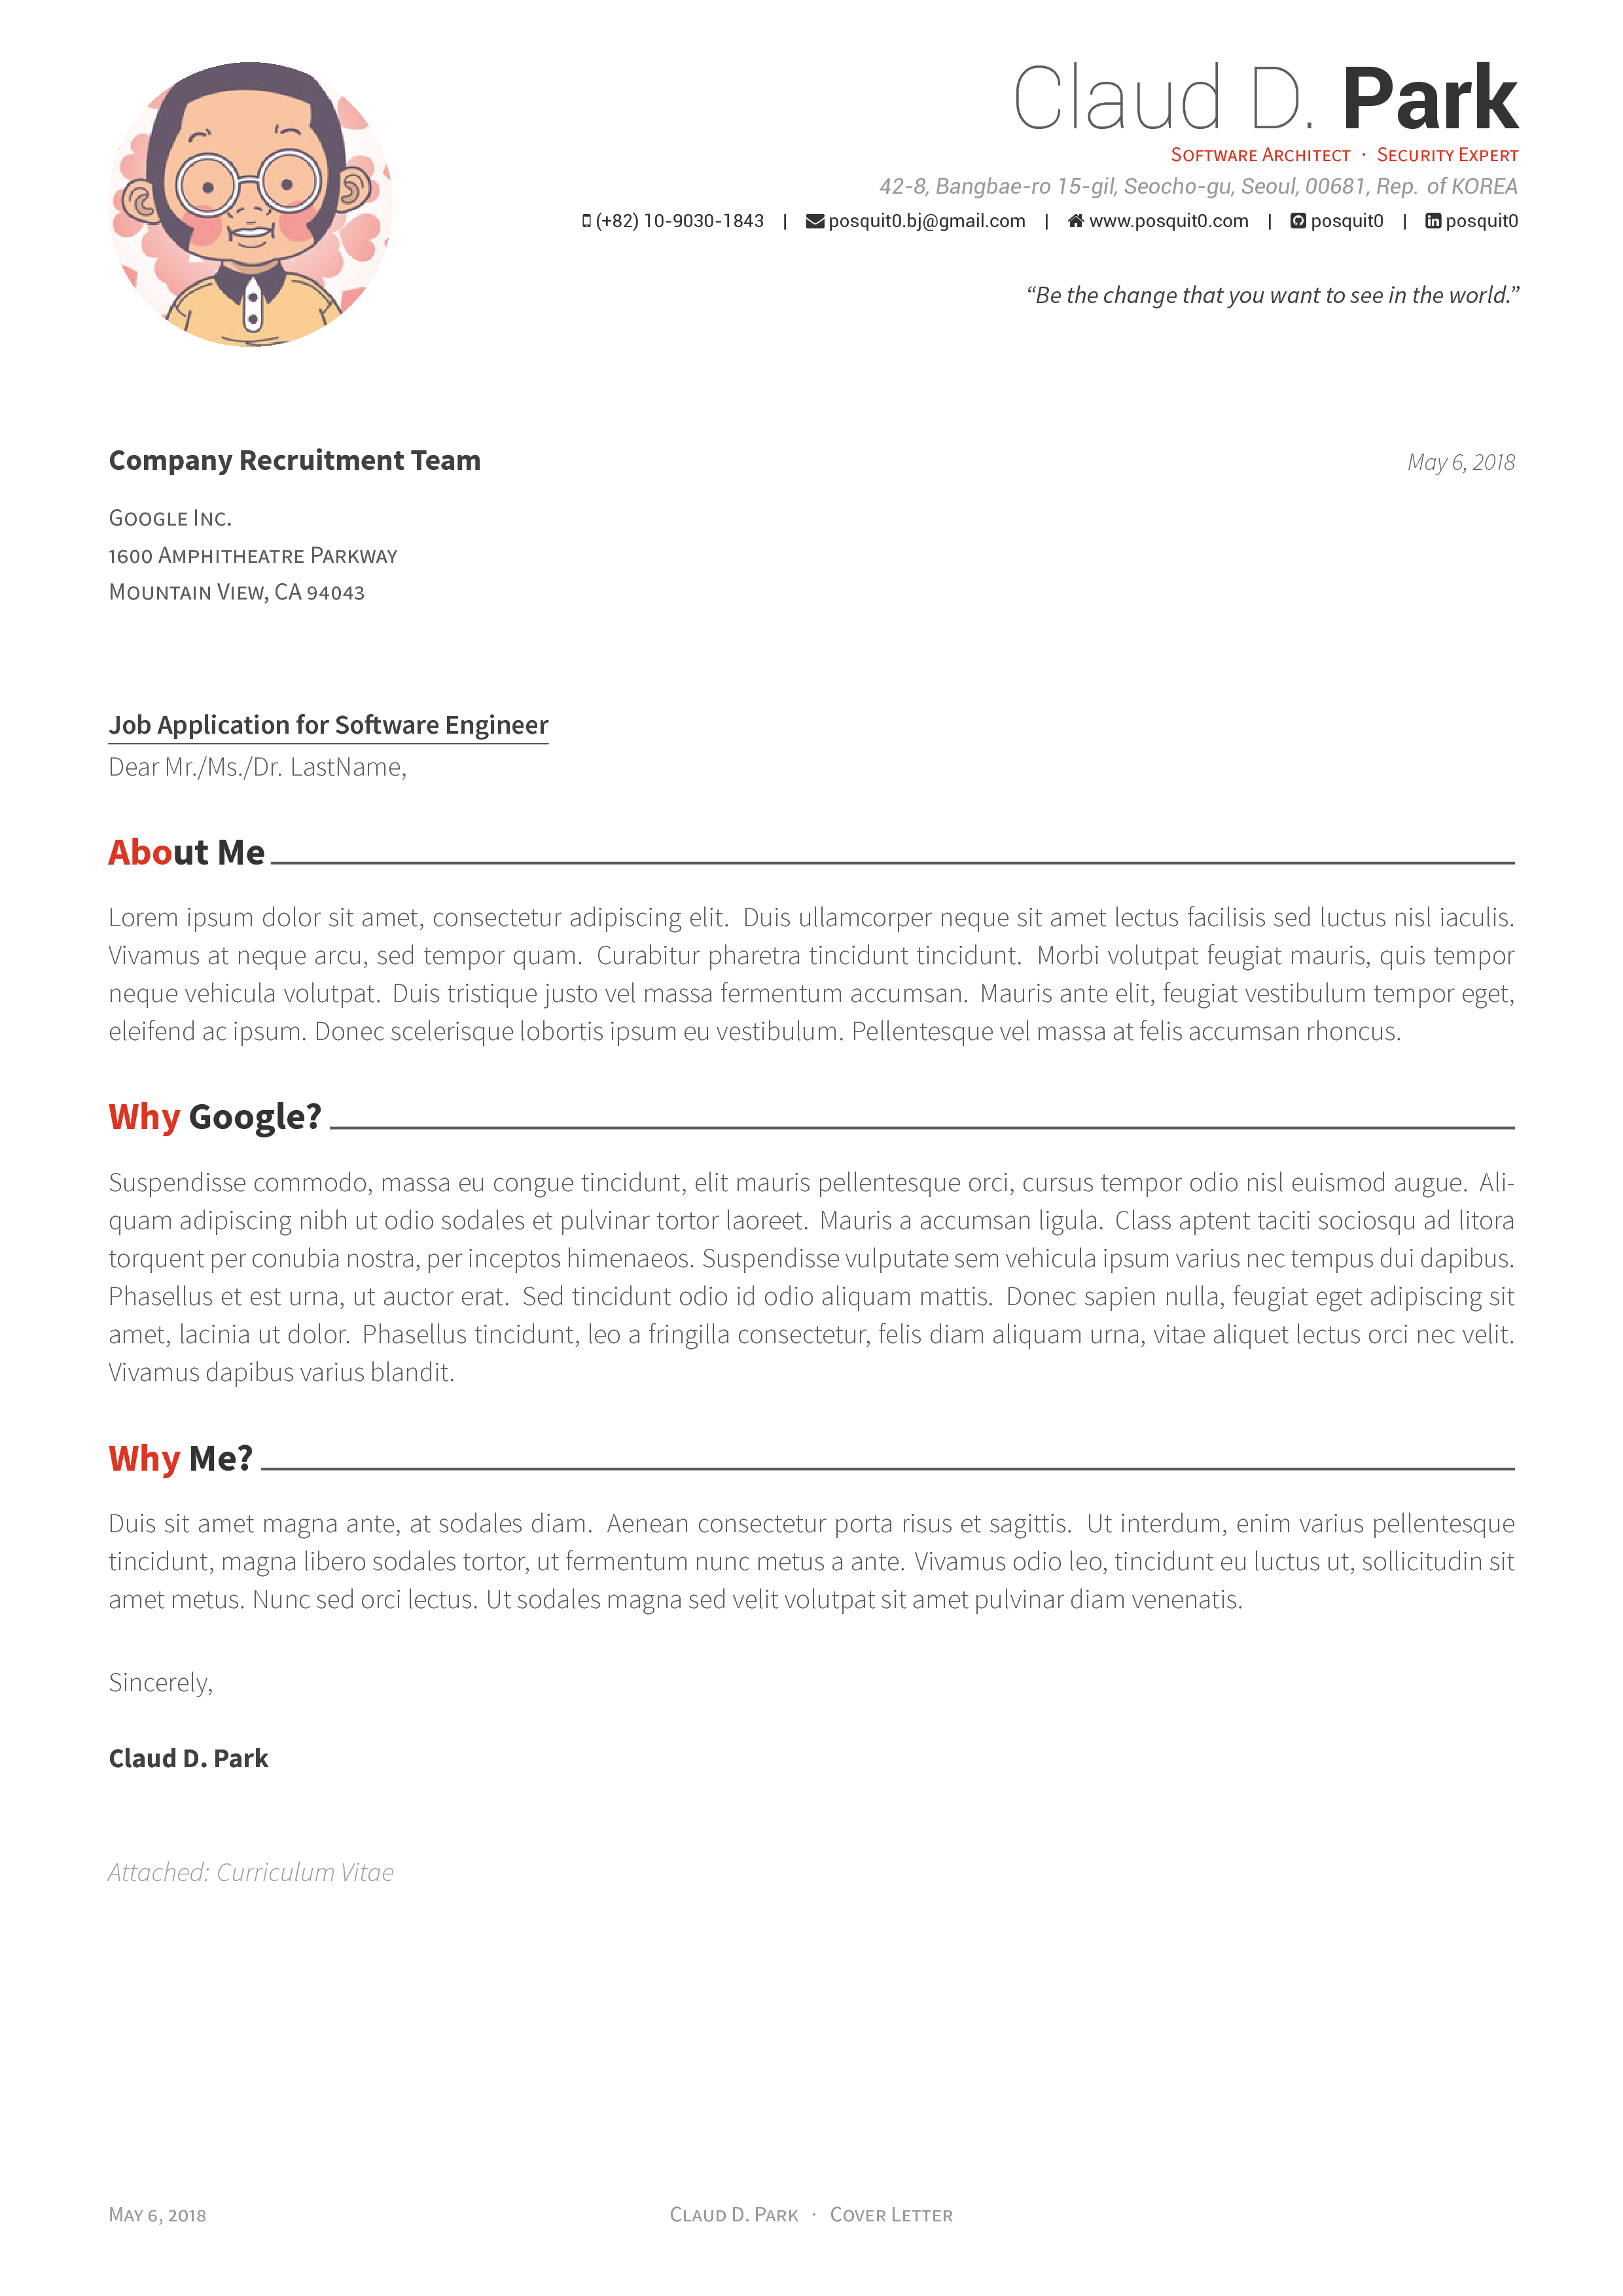 cover lettertraditional cover letterawesome - Show Me An Example Of A Cover Letter